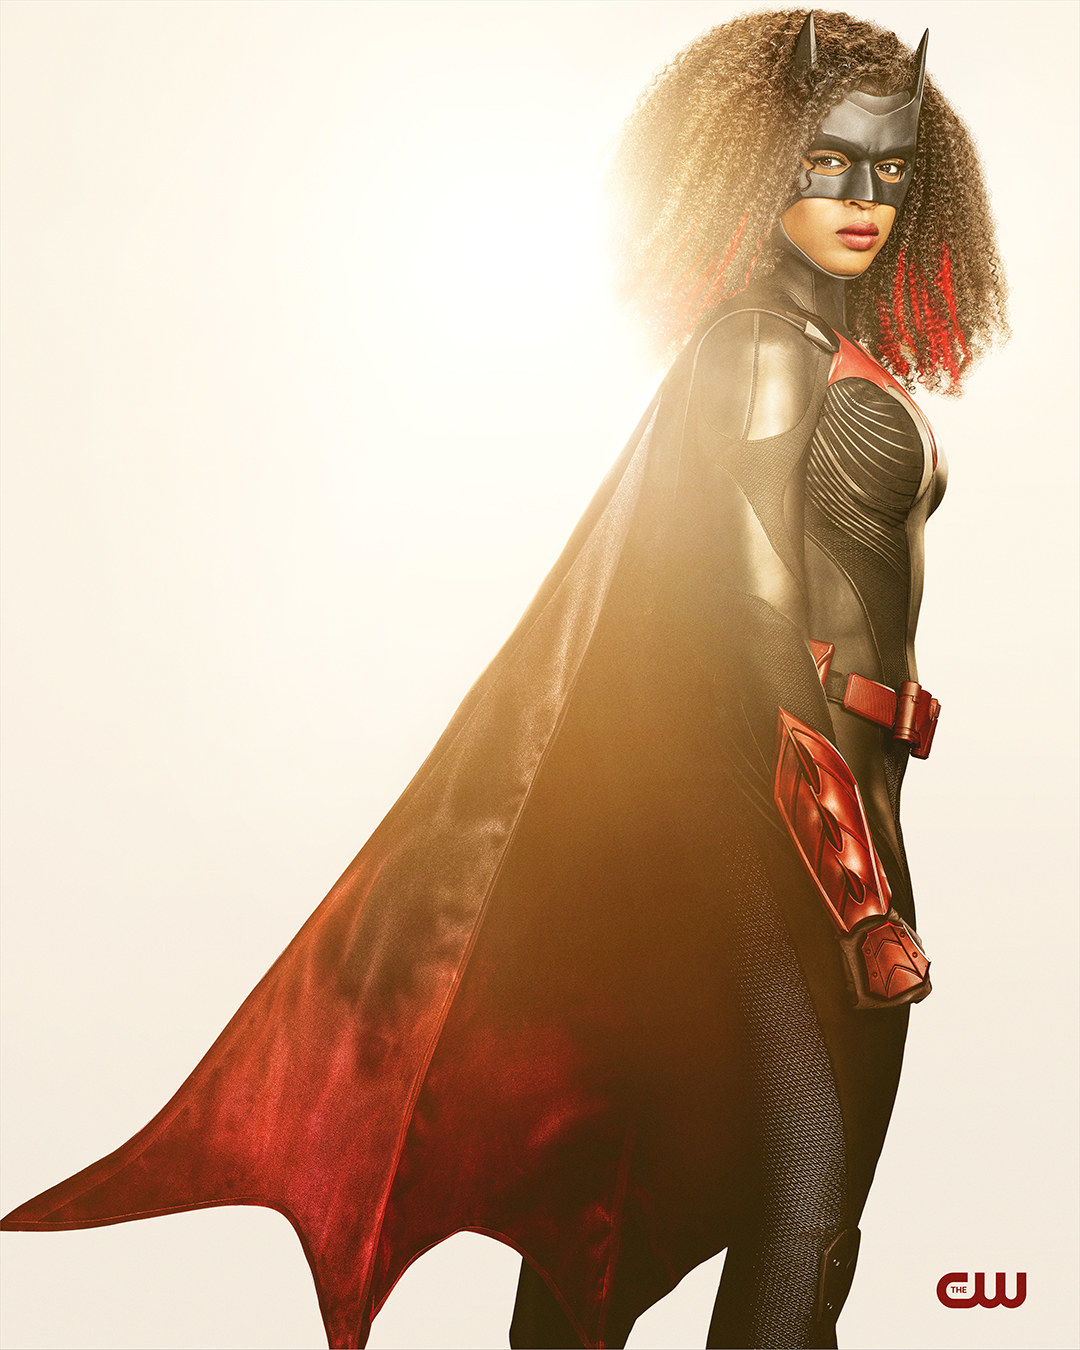 Javicia Leslie as Batwoman in the new Batwoman costume that features a new cowl